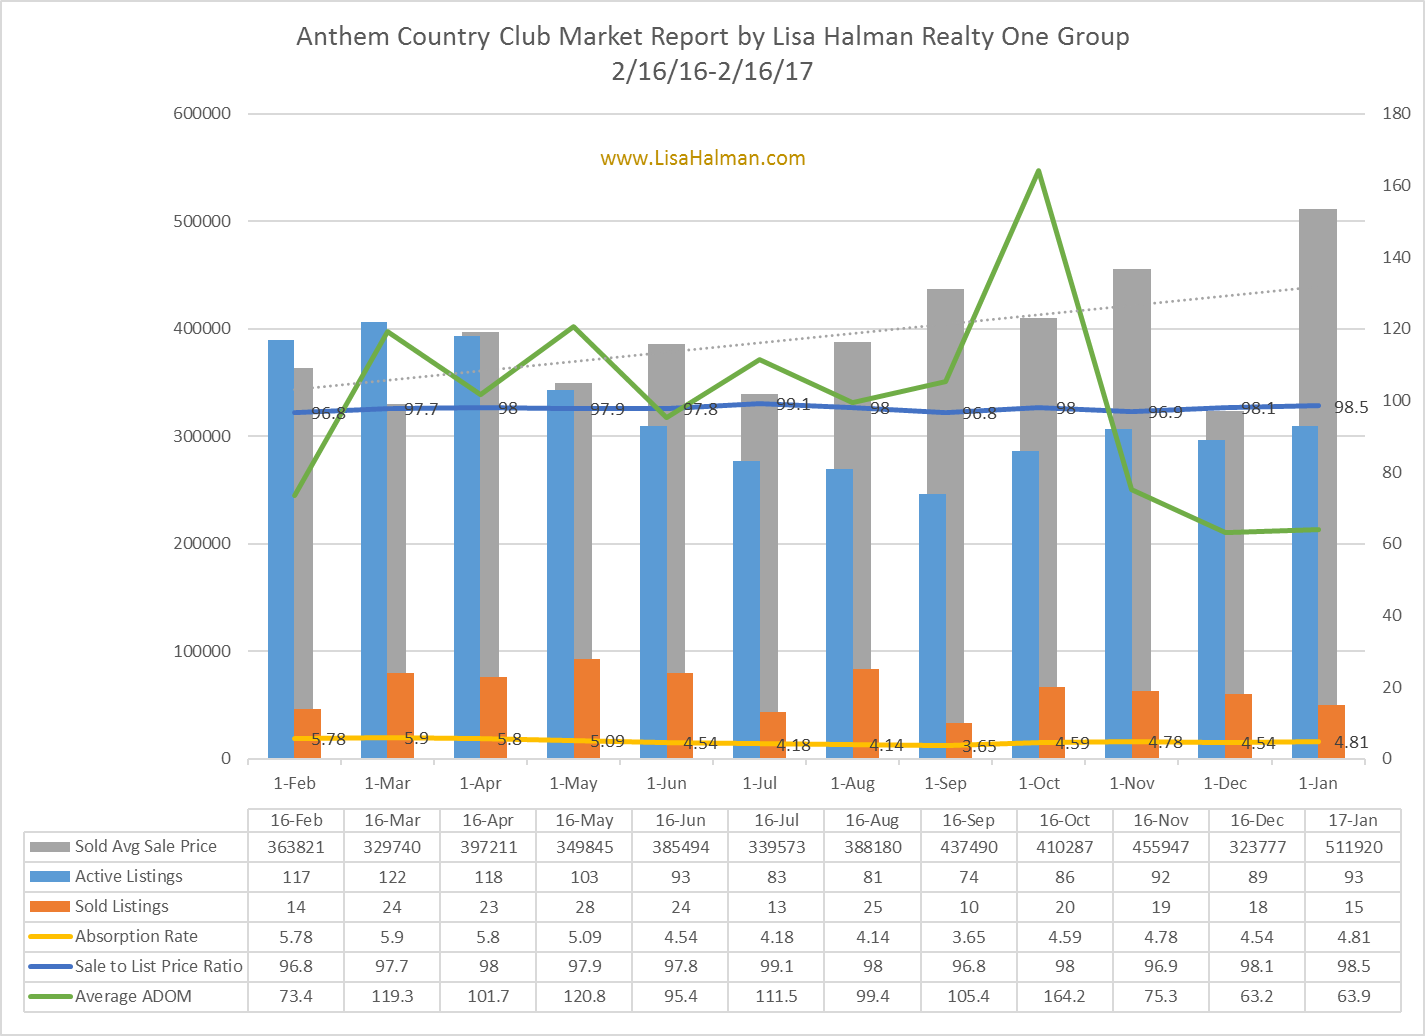 Anthem Country Club Market Report January 2017